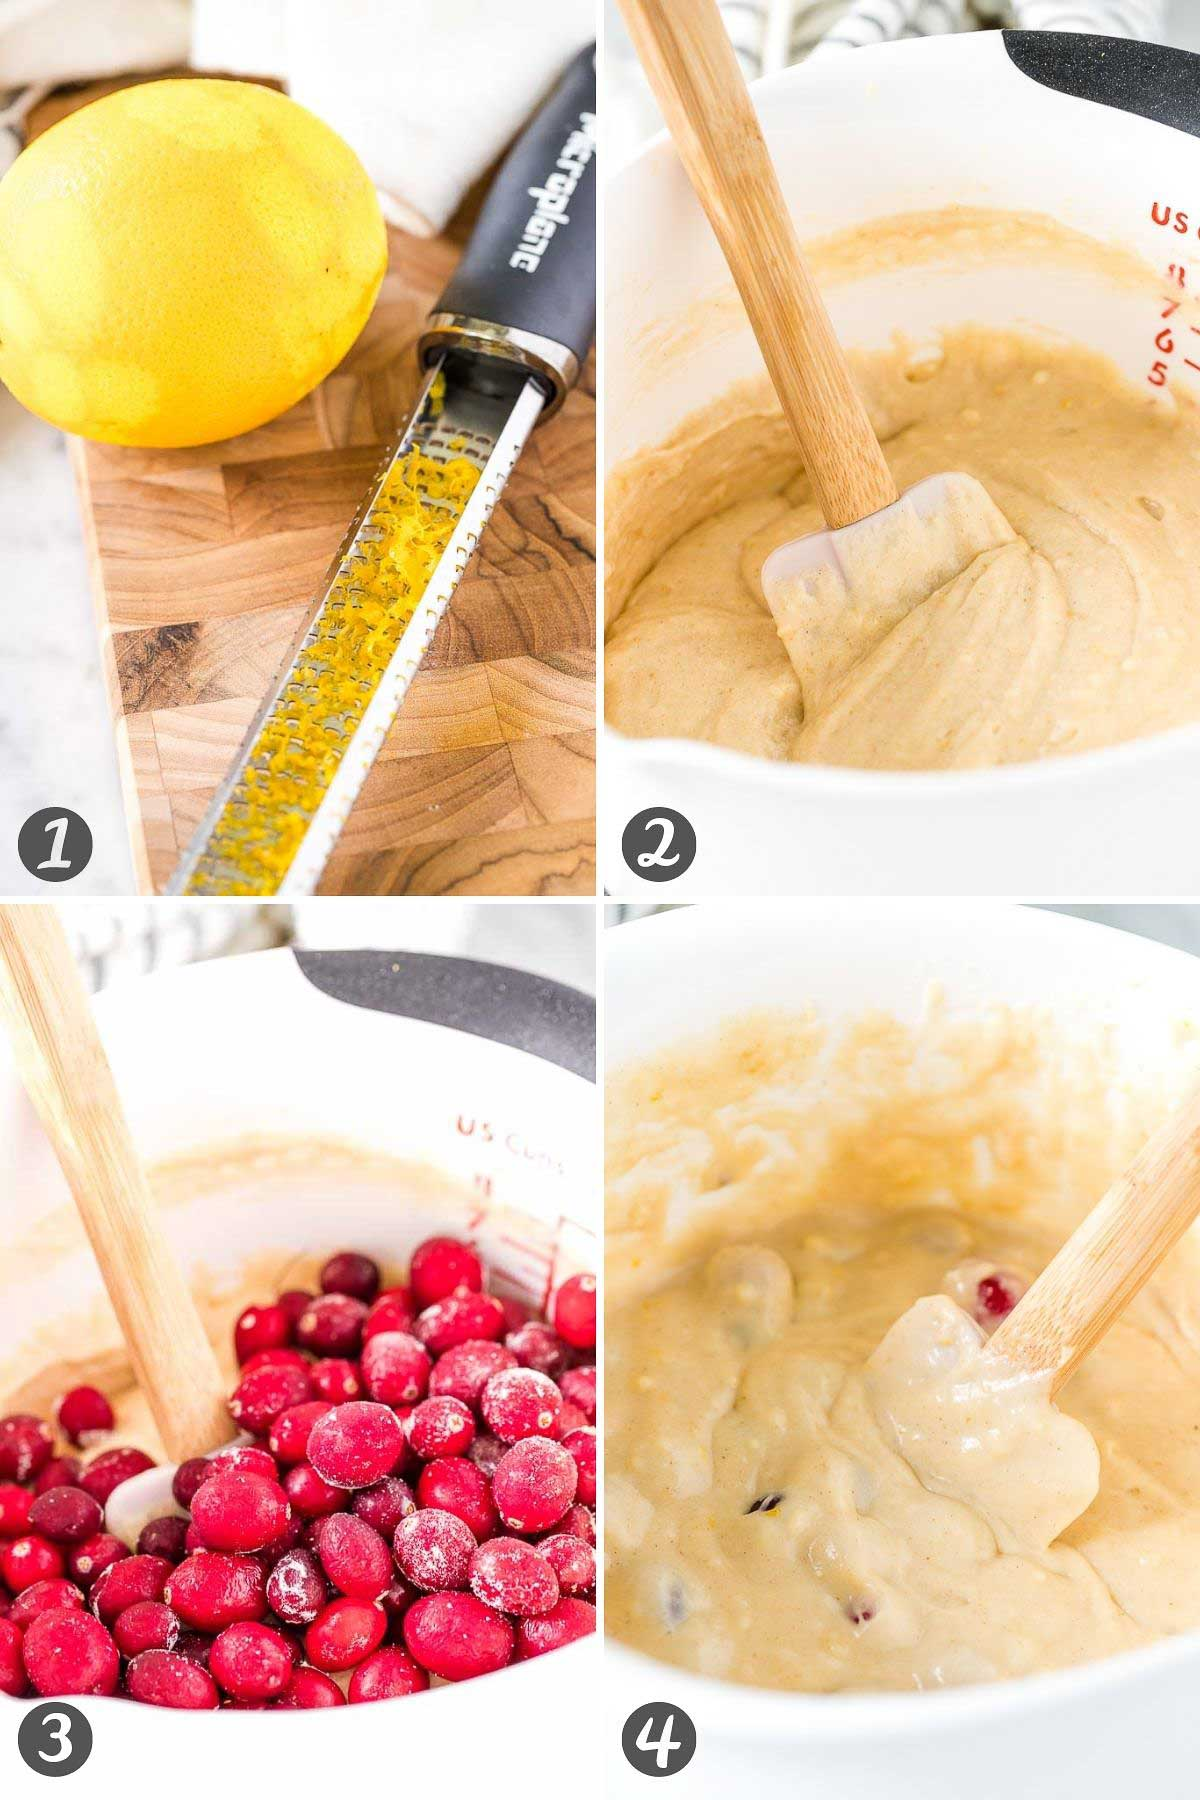 Step by step collage on how to make muffins